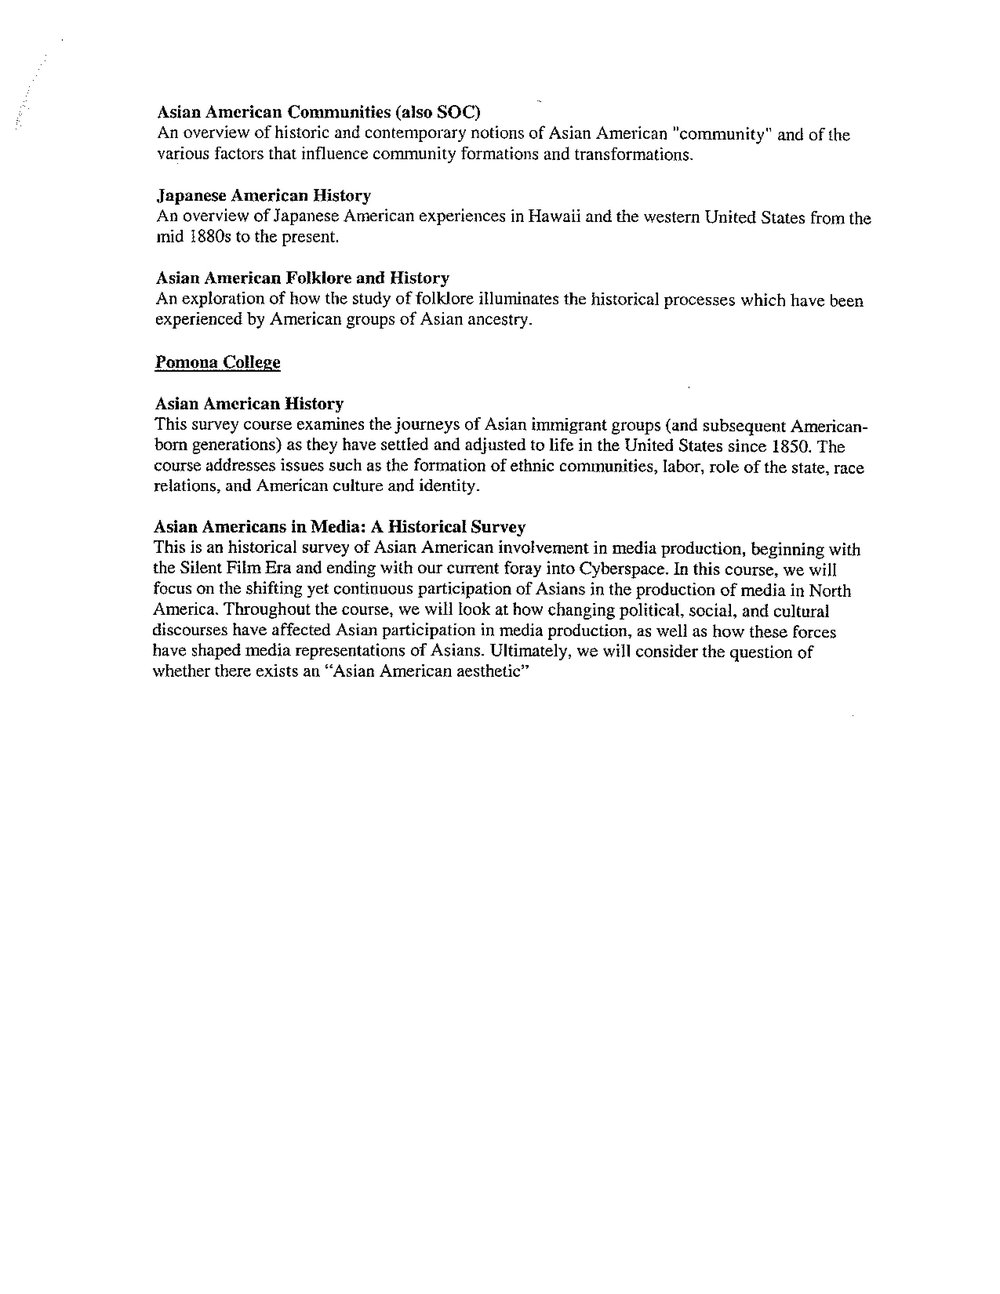 Possible Courses for movement-page-009.jpg